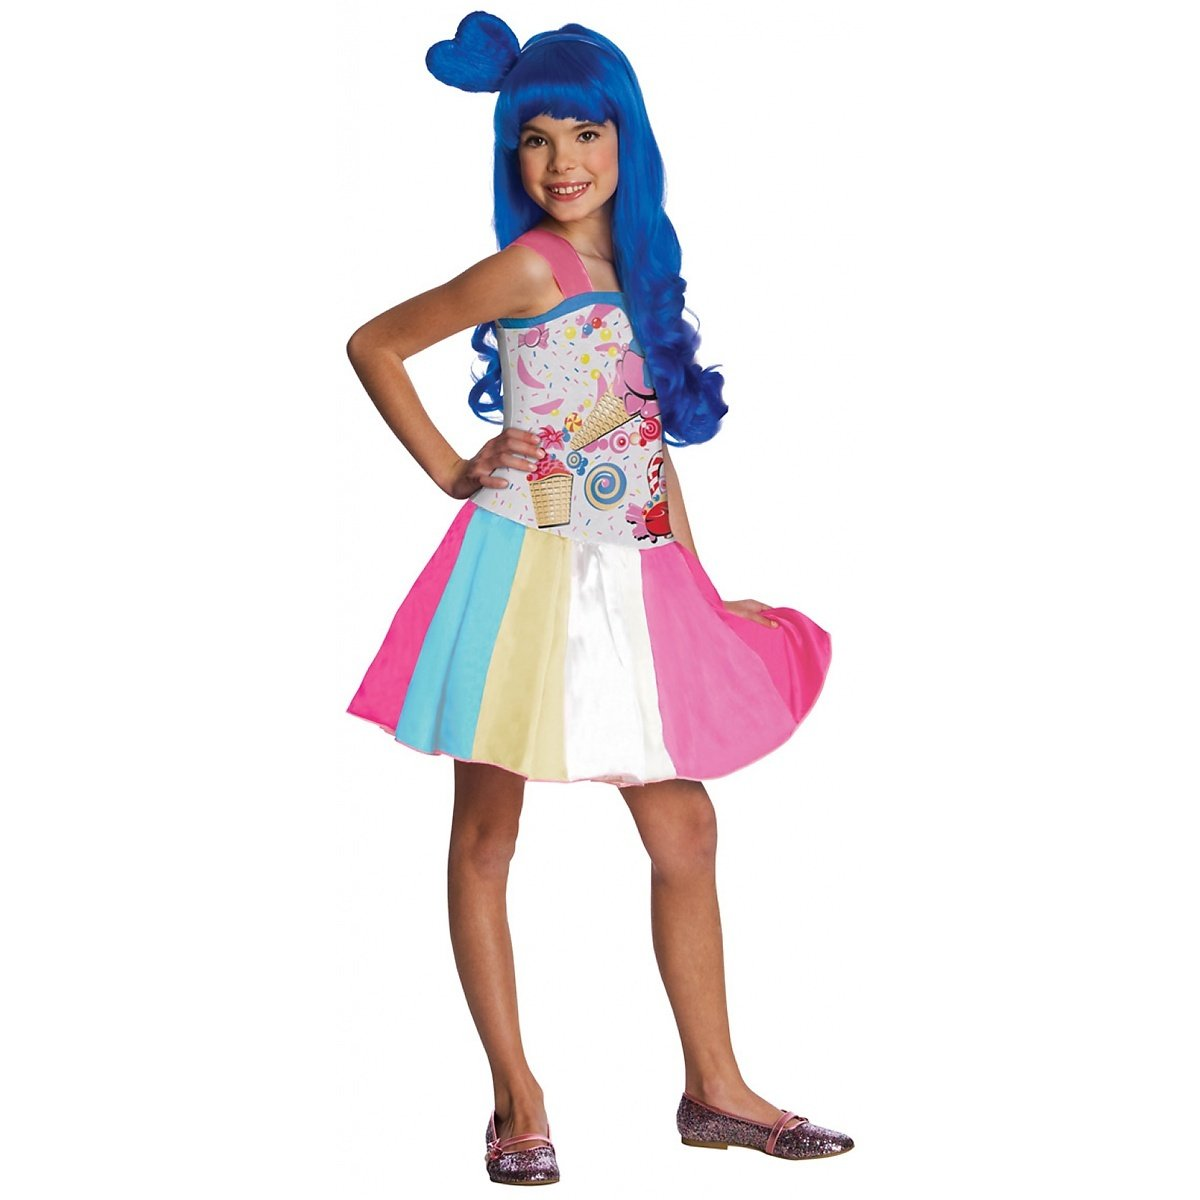 Rubies Costume Co R881659-S Girls Katy Perry Candy Girl Costume PEQUE-O